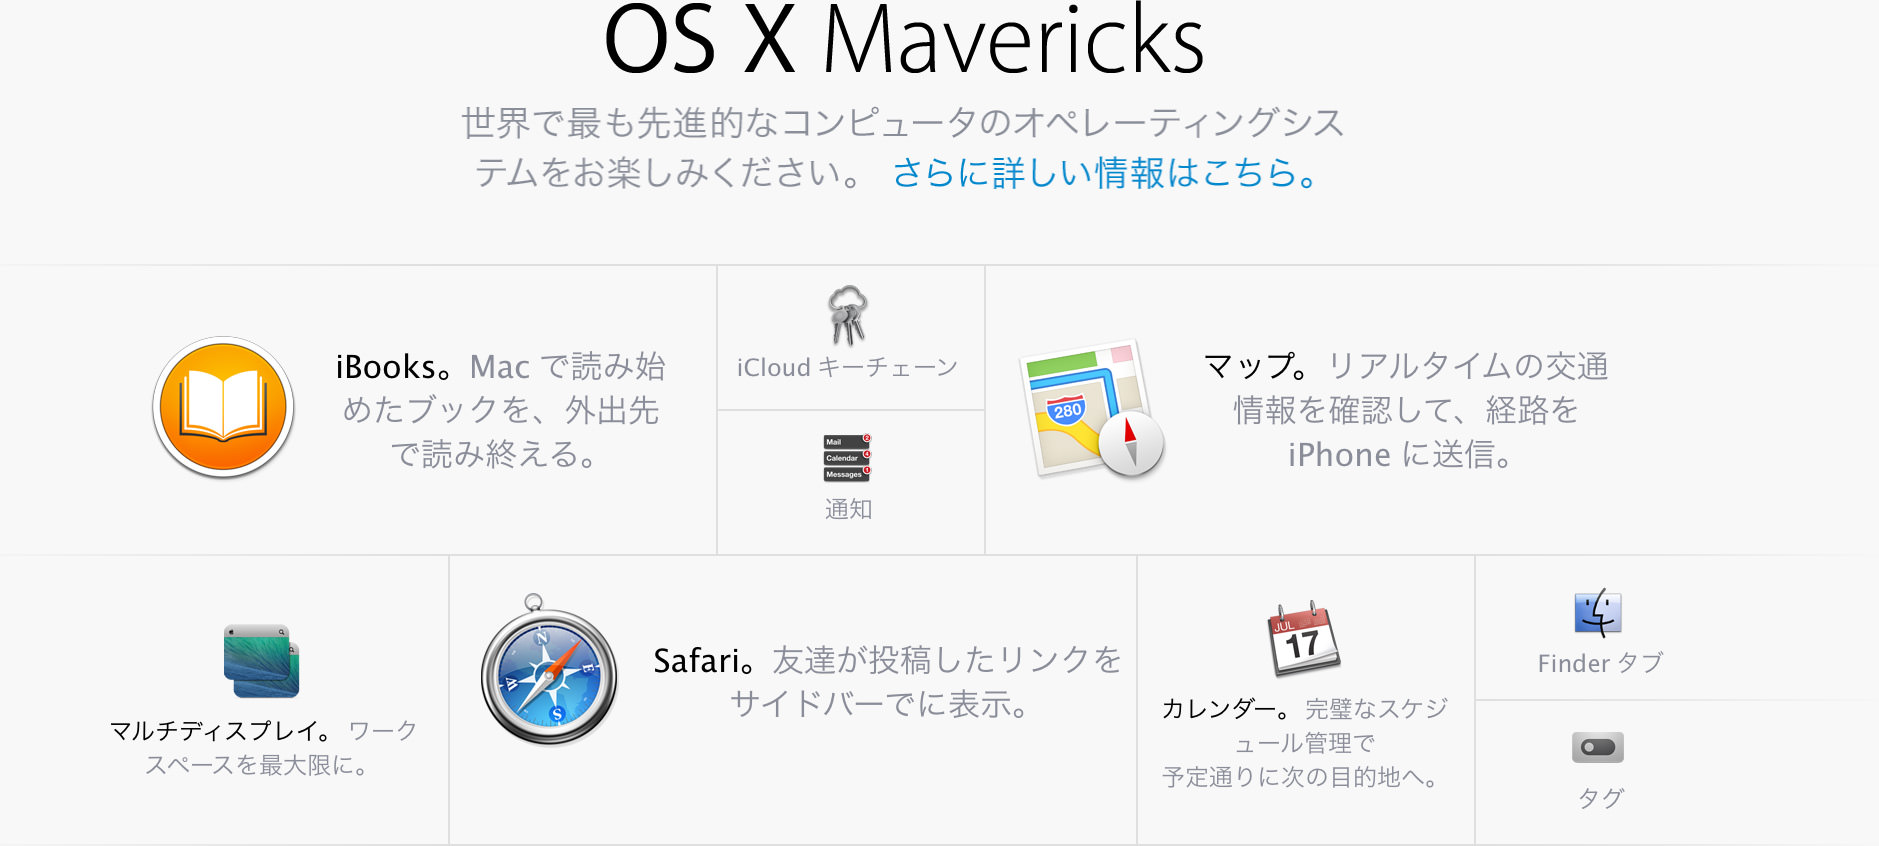 Mavericks-new-feature.jpg